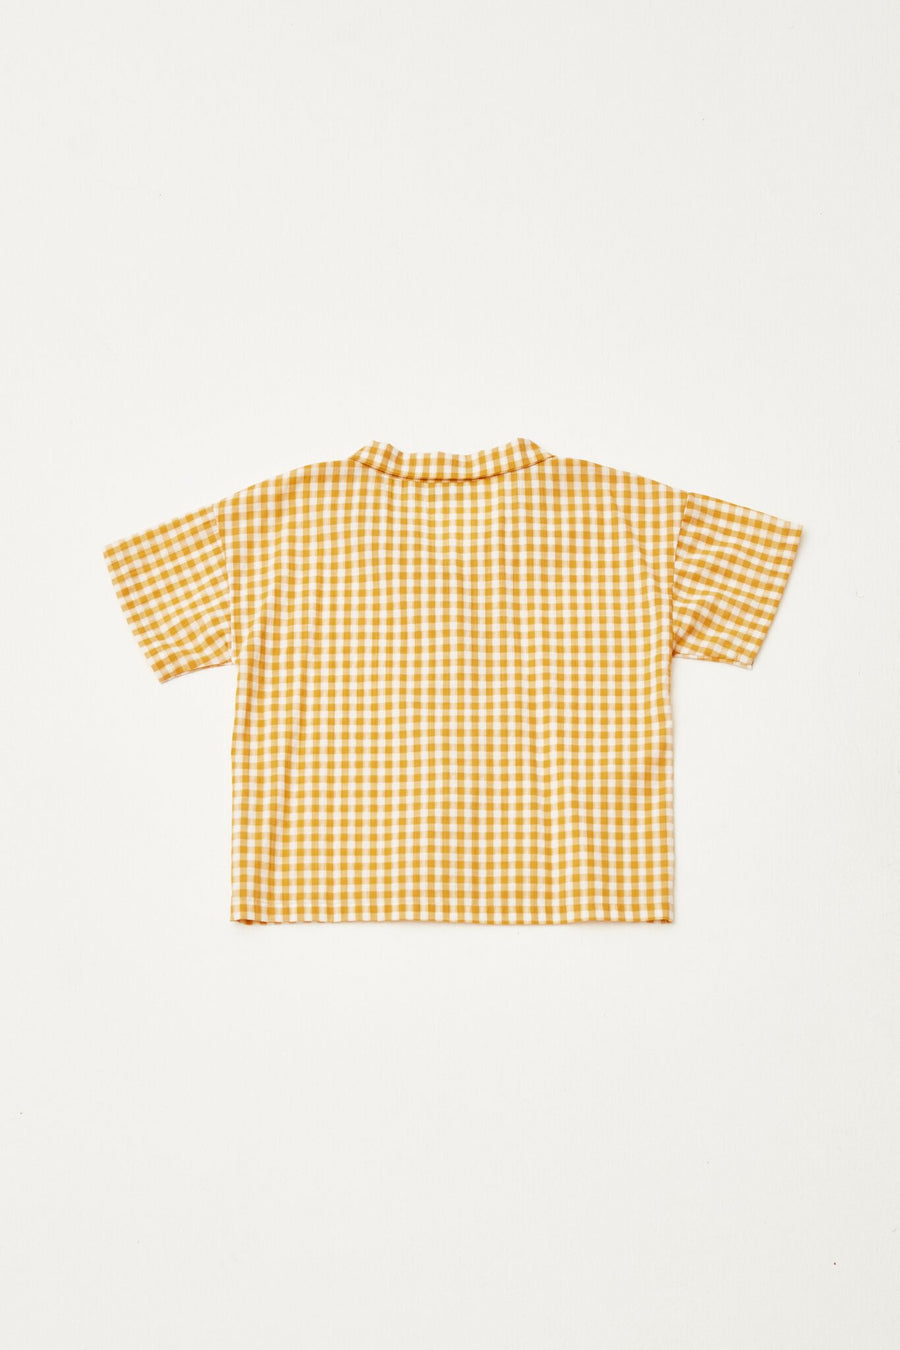 THE CAMPAMENTO CHECKED SHIRT